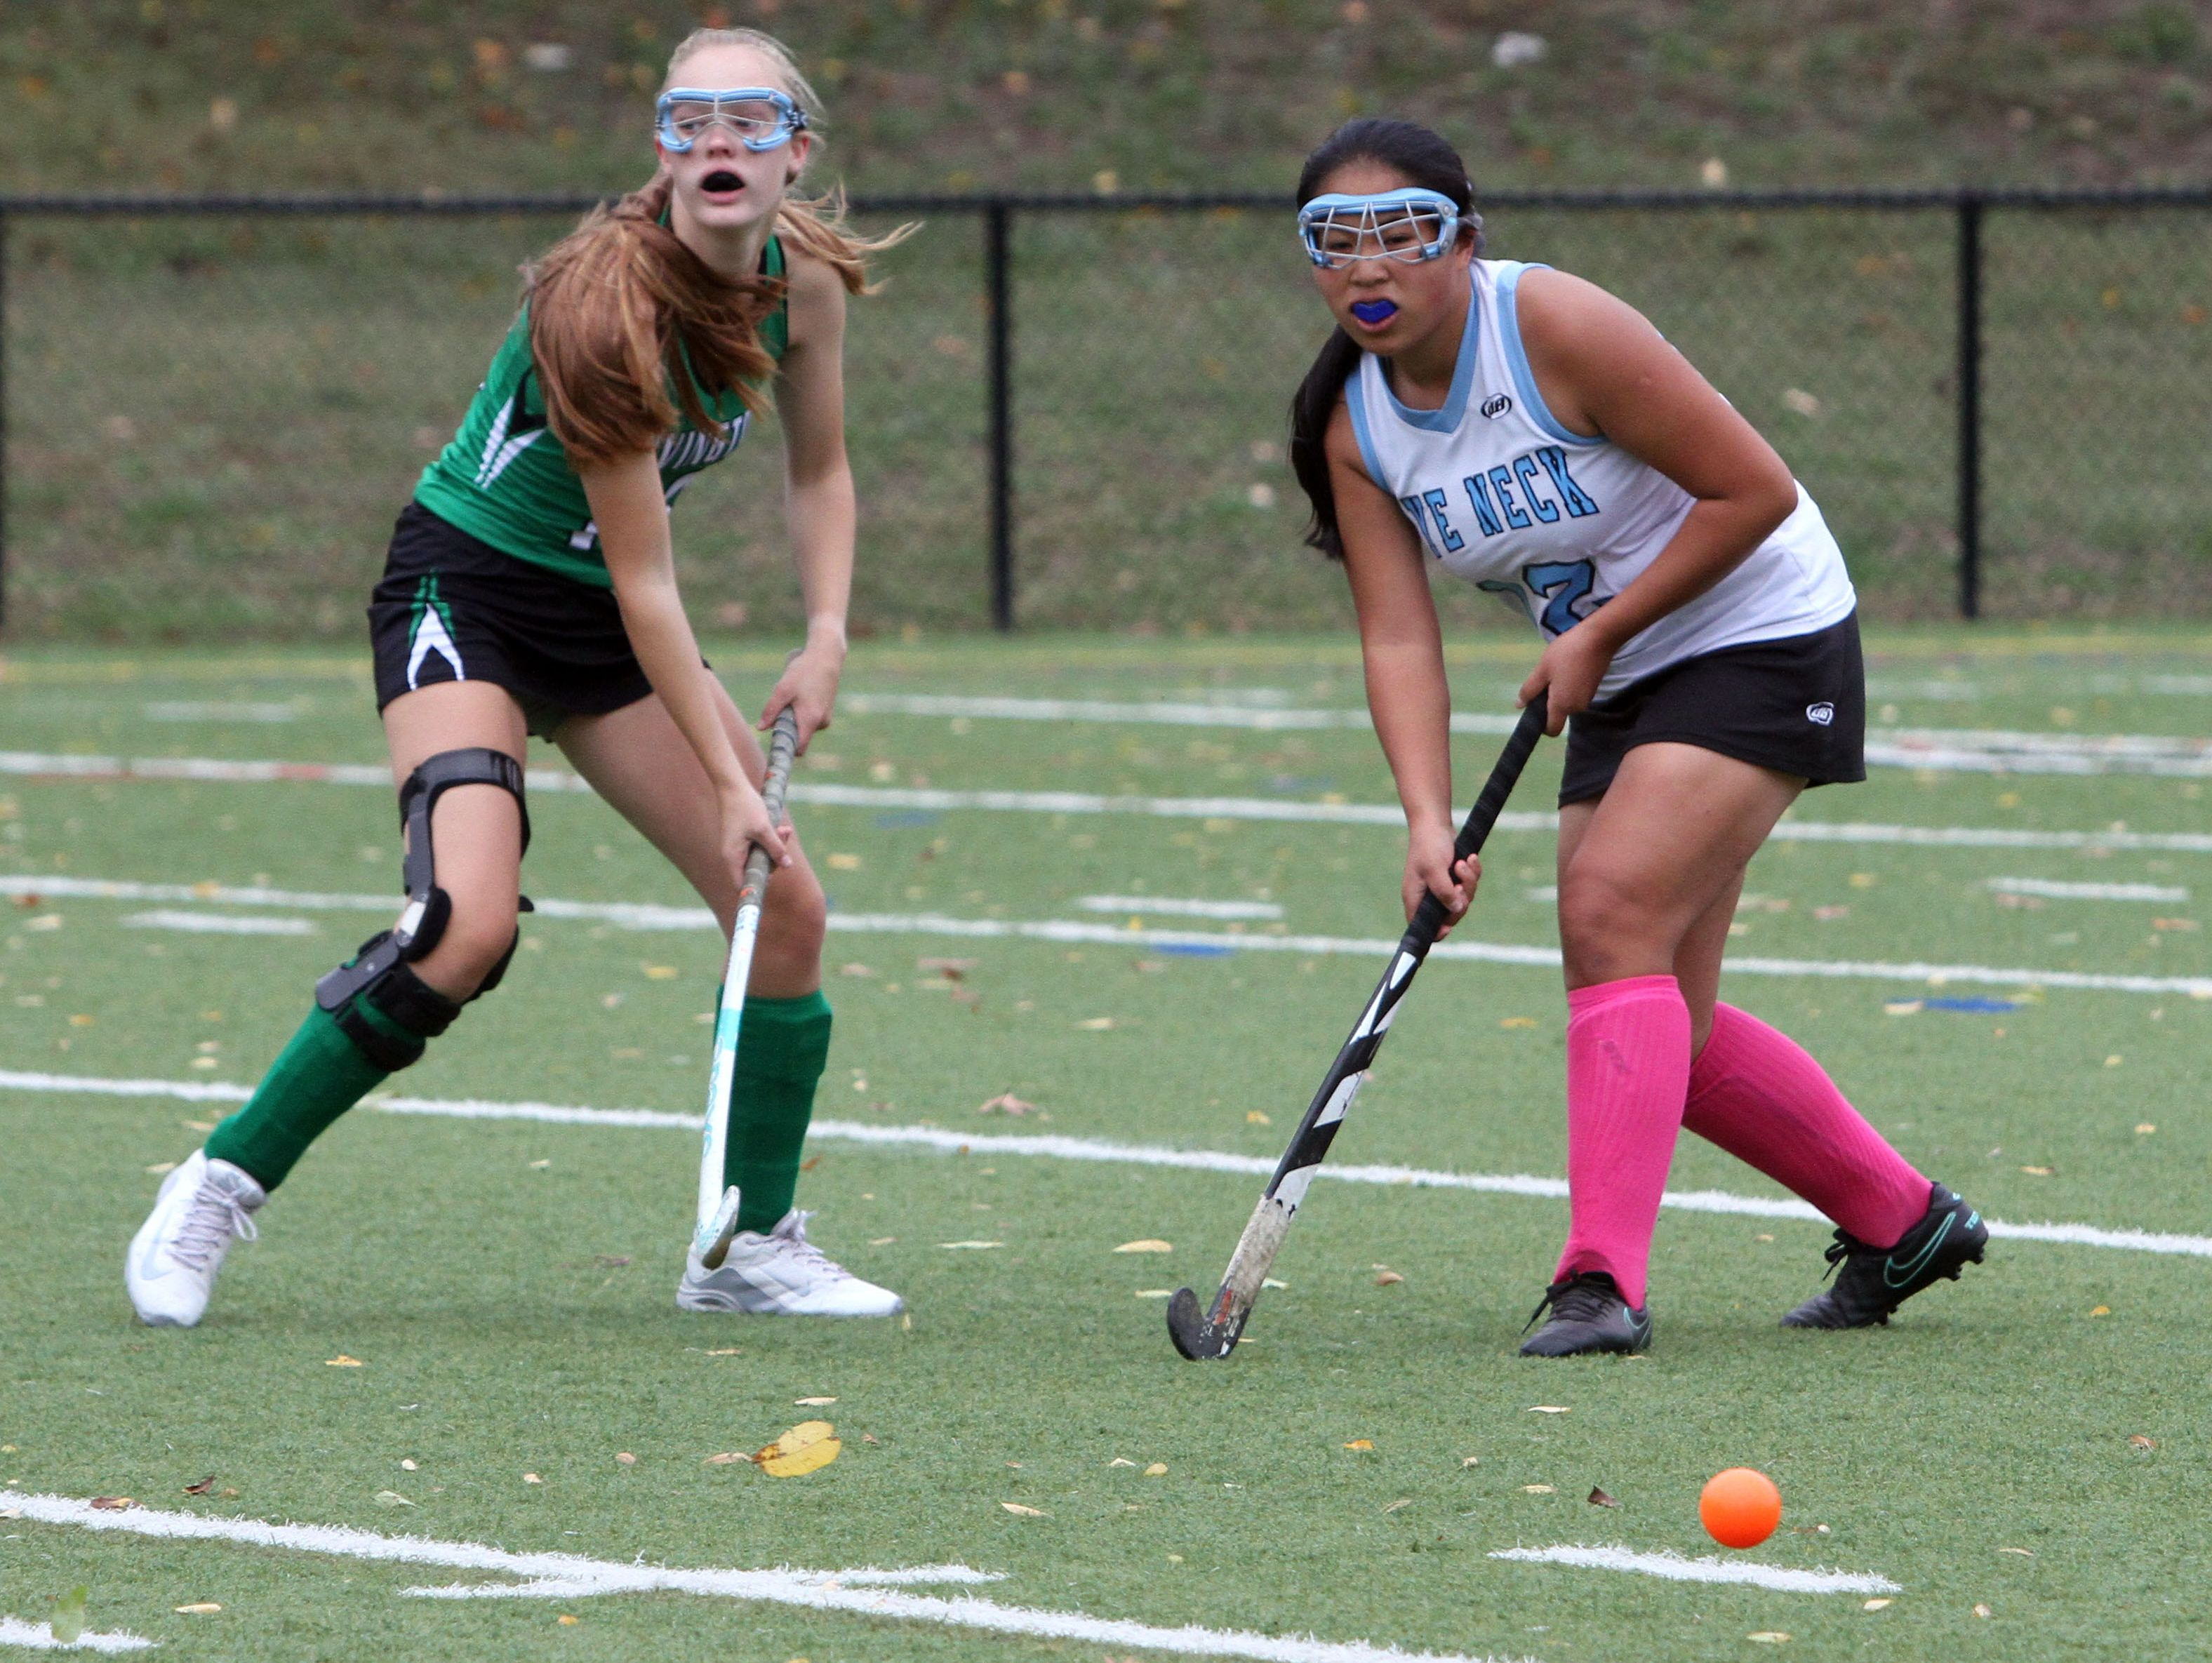 Irvington's Suzanne Carroll and Rye Neck's April Zhang close in on the ball during their game at Mamaroneck High School on Saturday.